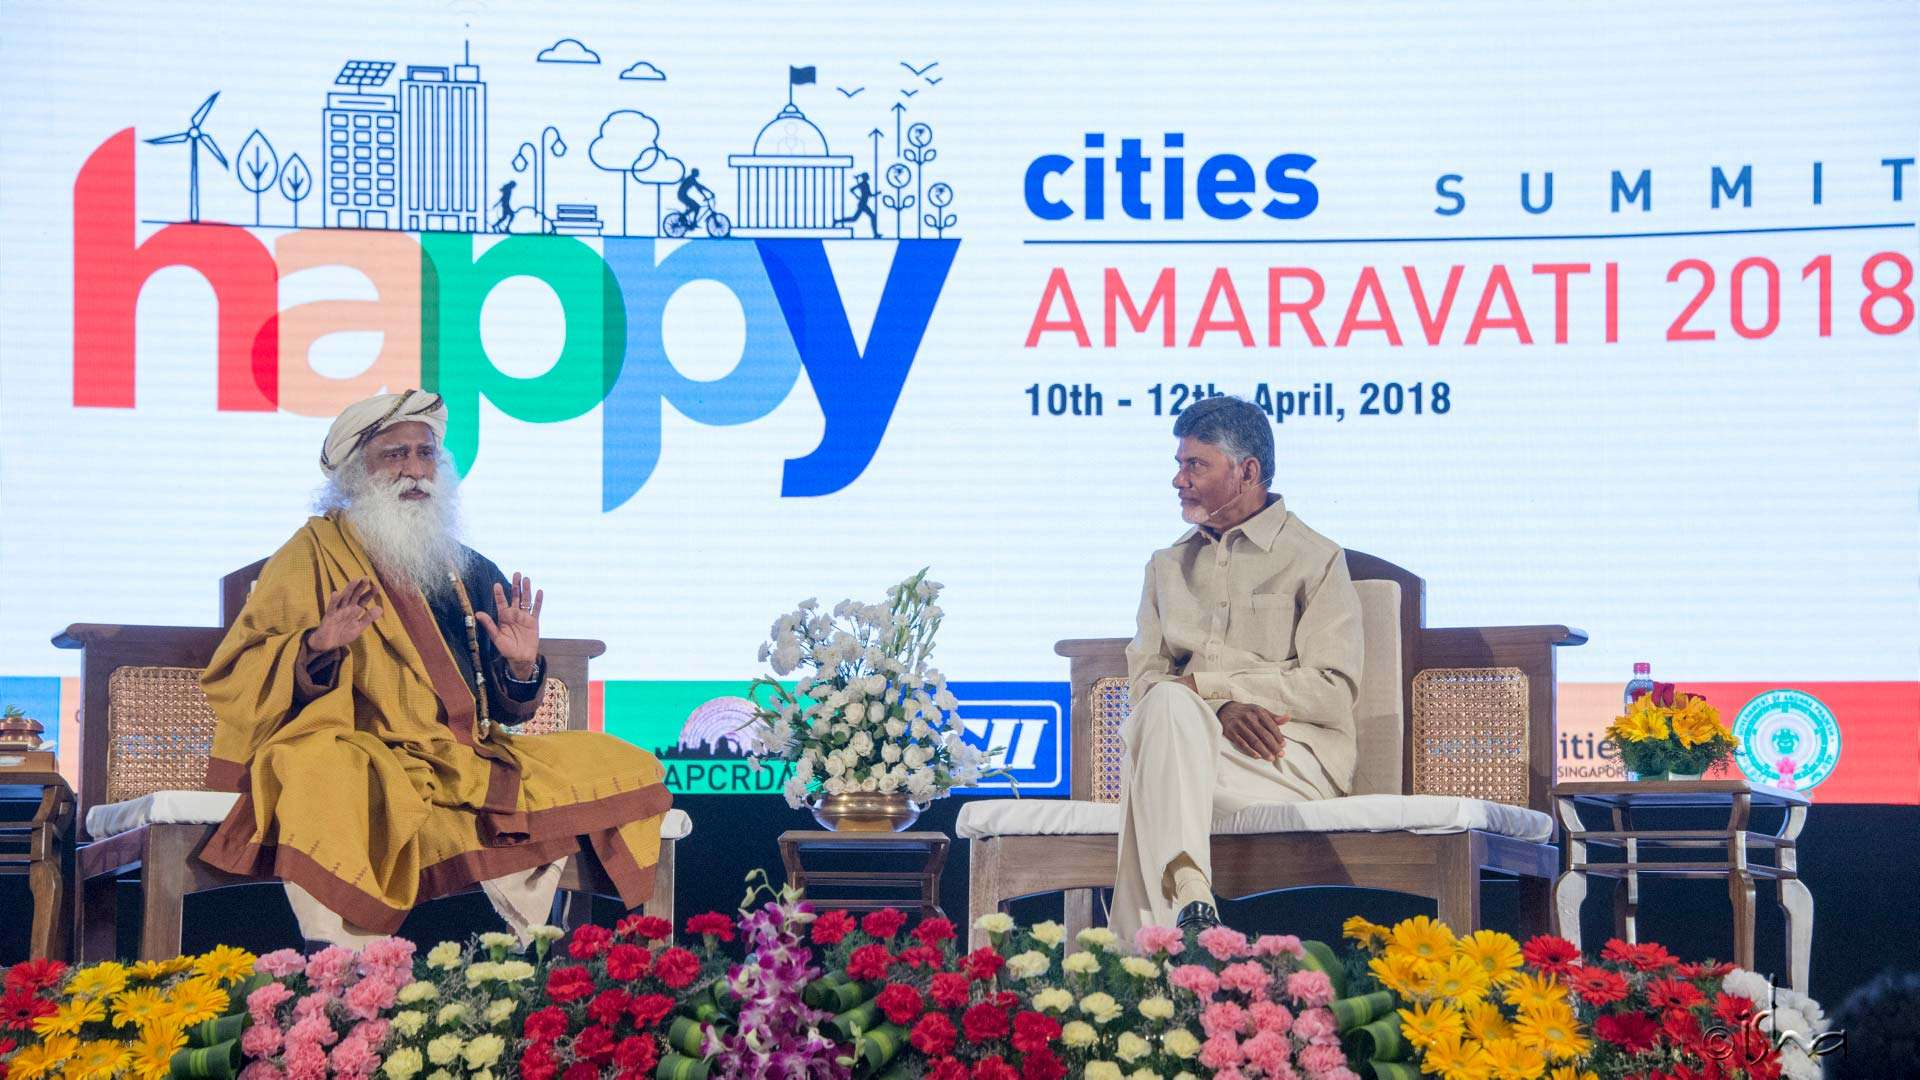 CM Chandrababu Naidu in conversation with Sadhguru on what makes a happy city